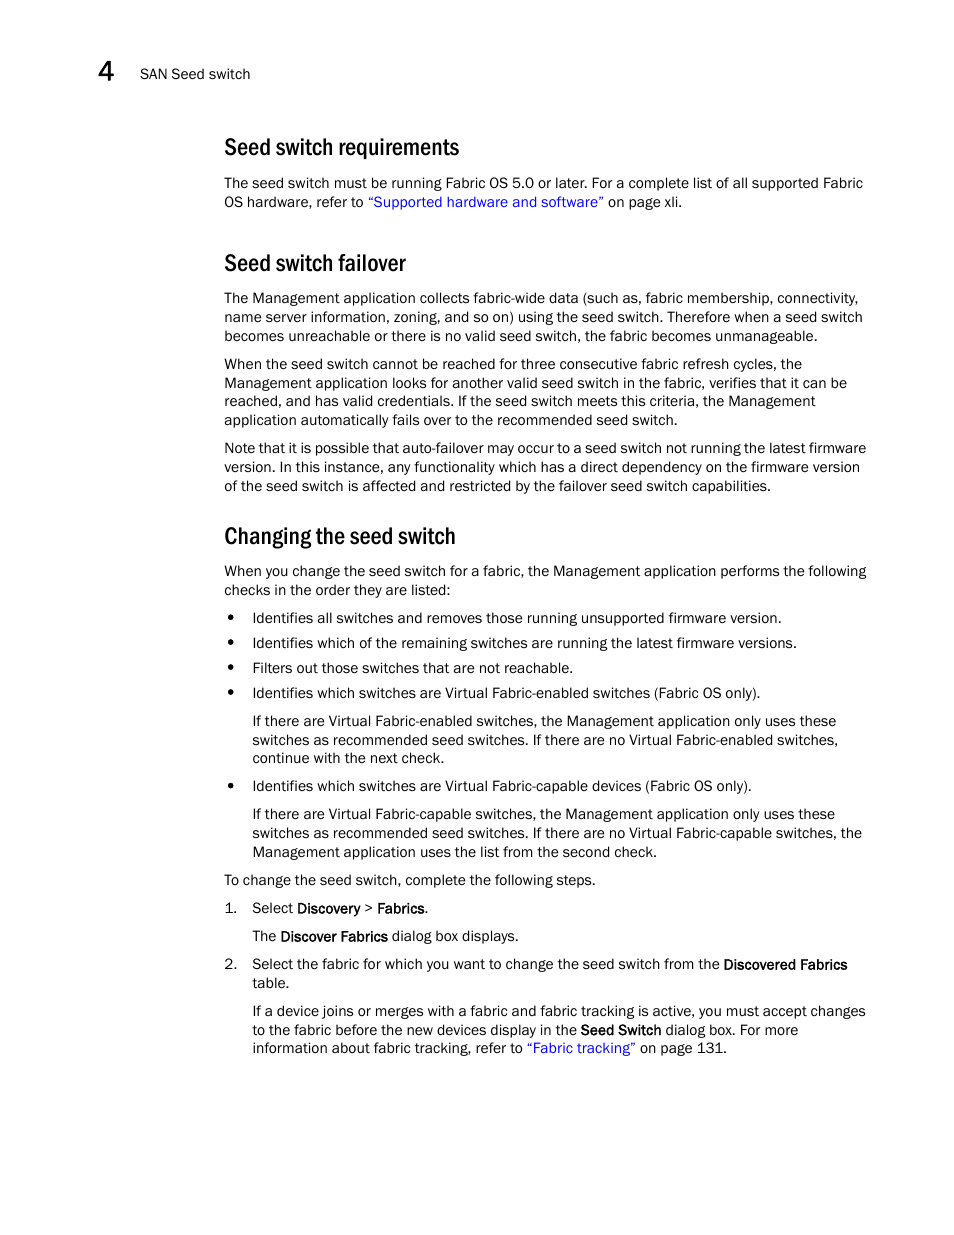 Seed switch requirements, Seed switch failover, Changing the seed switch |  Brocade Network Advisor SAN User Manual v12.1.0 User Manual | Page 108 /  1690